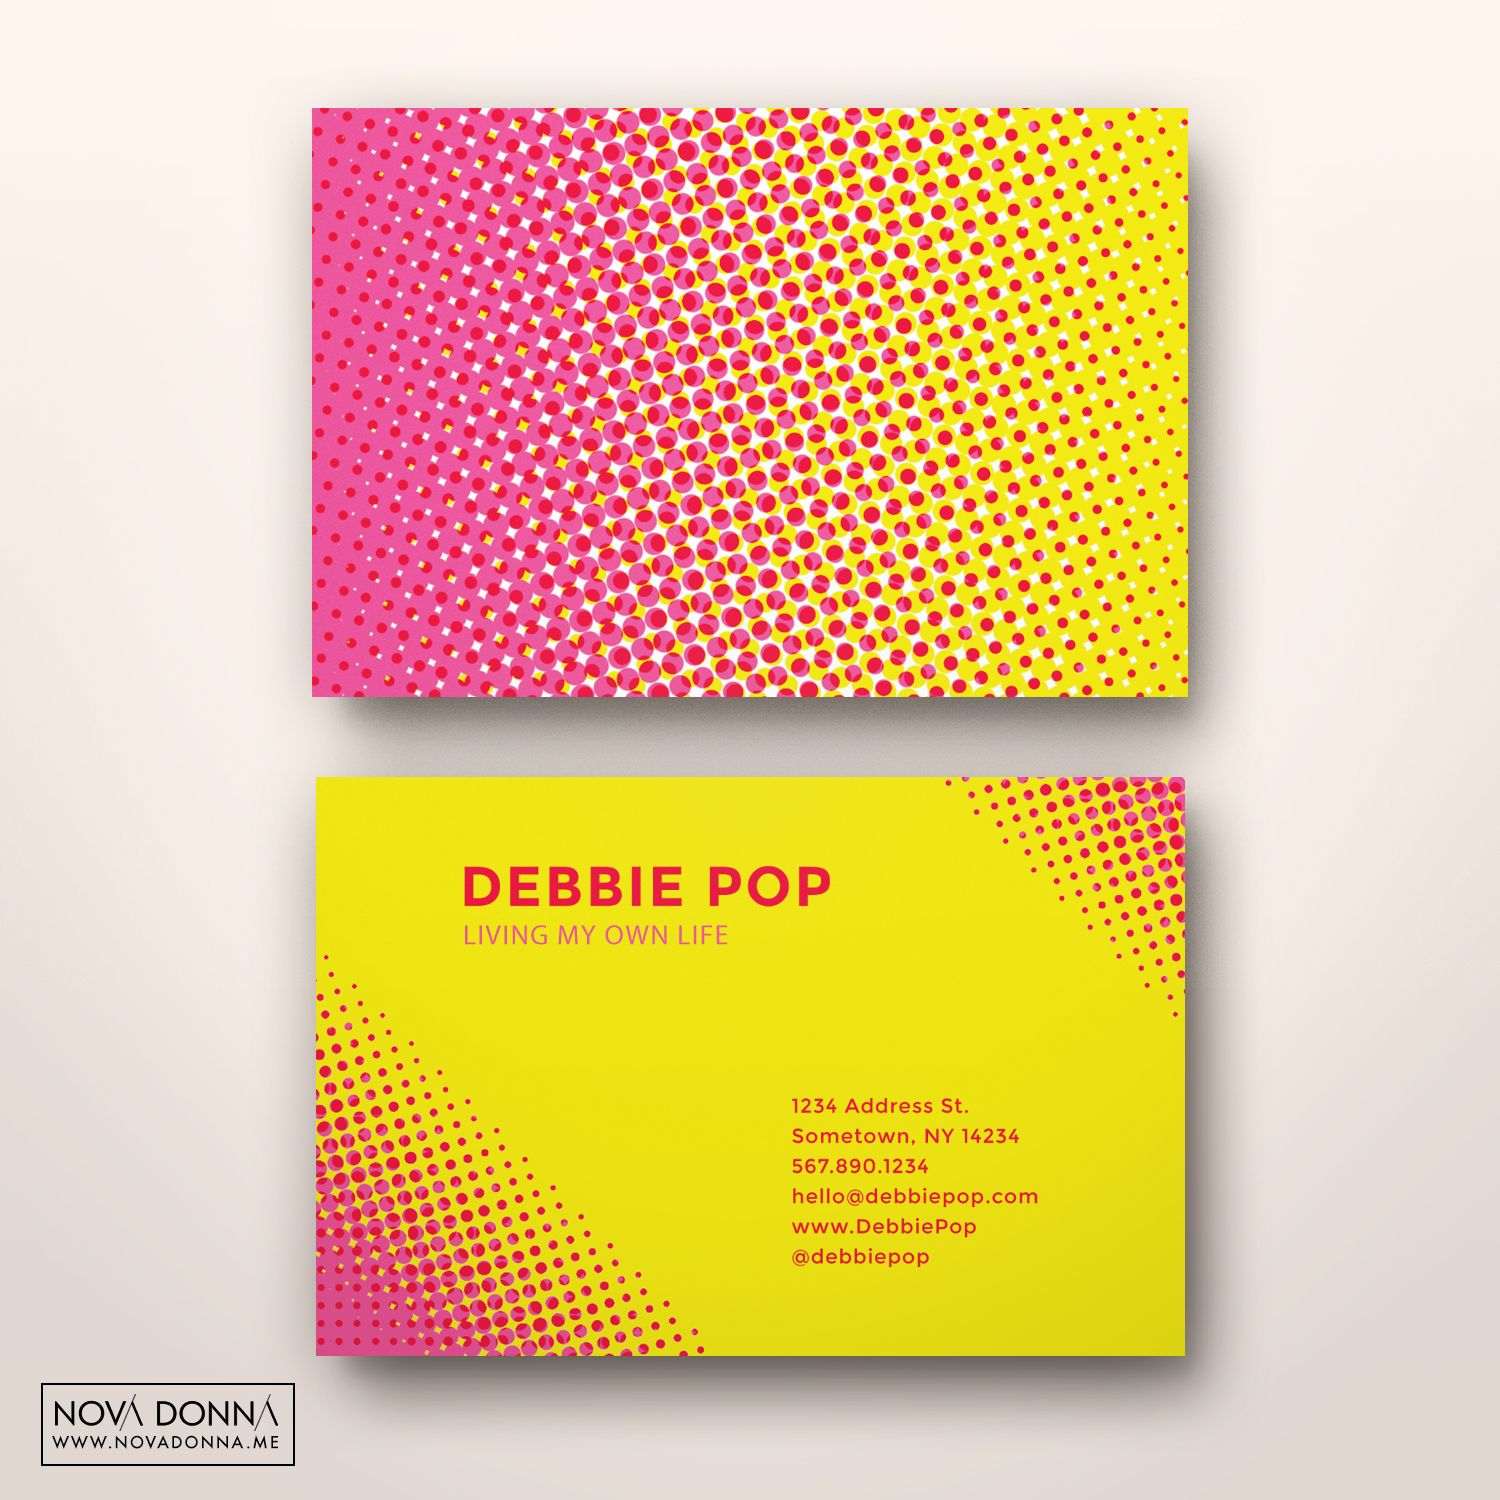 Business card template designs halftone pop business card design business card design templates halftone pop cheaphphosting Image collections